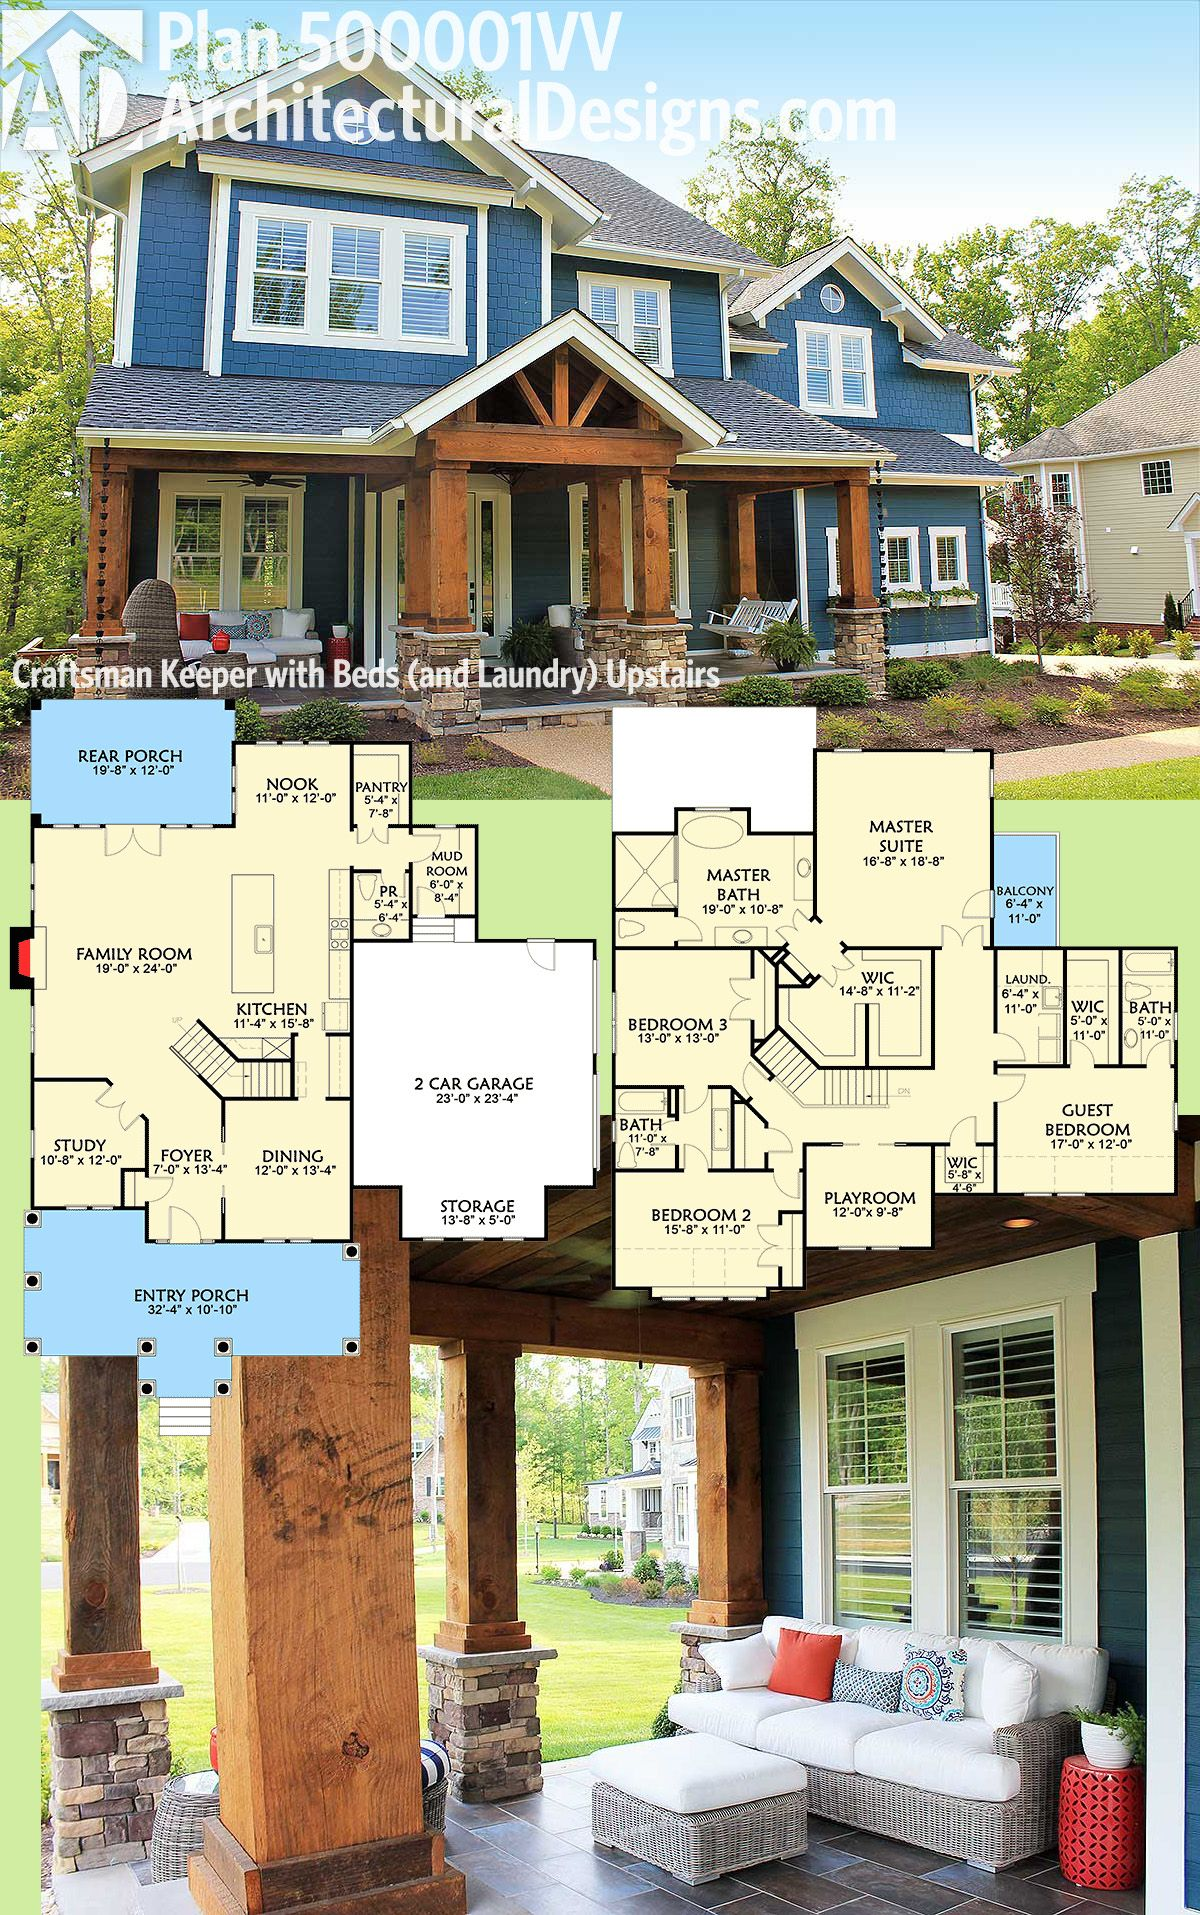 Introducing Architectural Designs House Plan 500001vv This 4 Bed Craftsman Gives You All The Beds